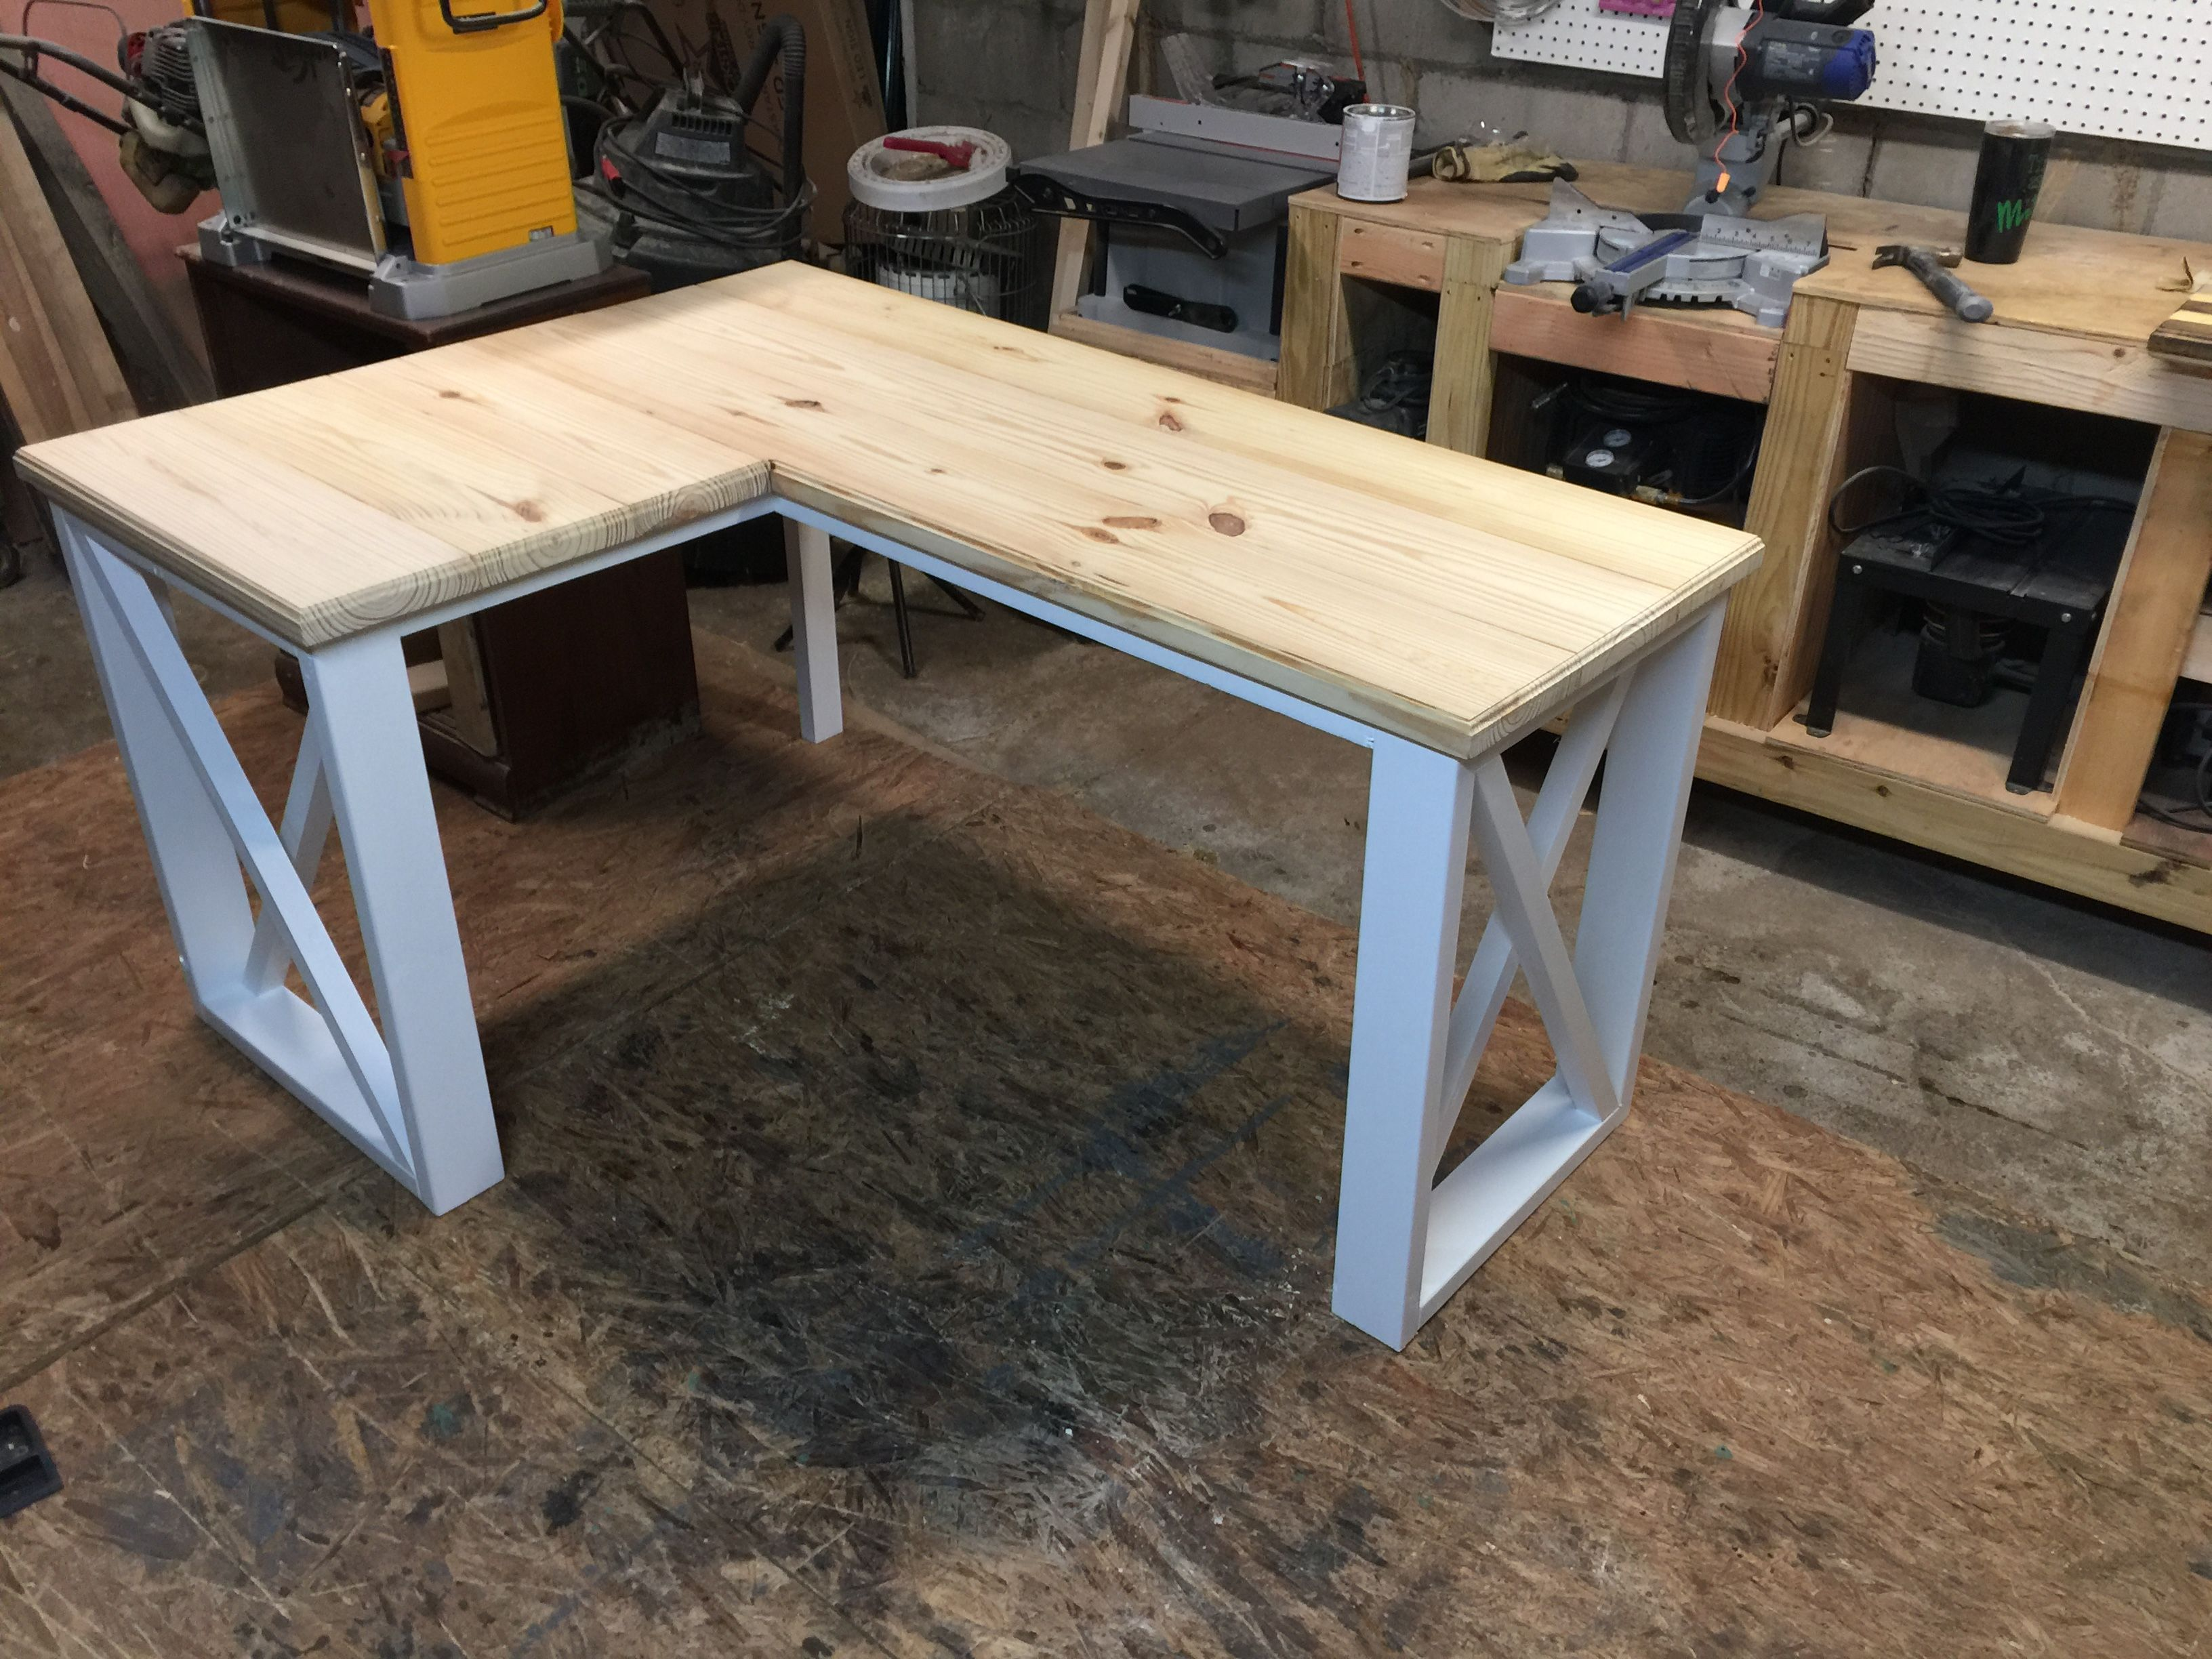 Lshaped desk created using 2x4's and 2x8's Diy corner